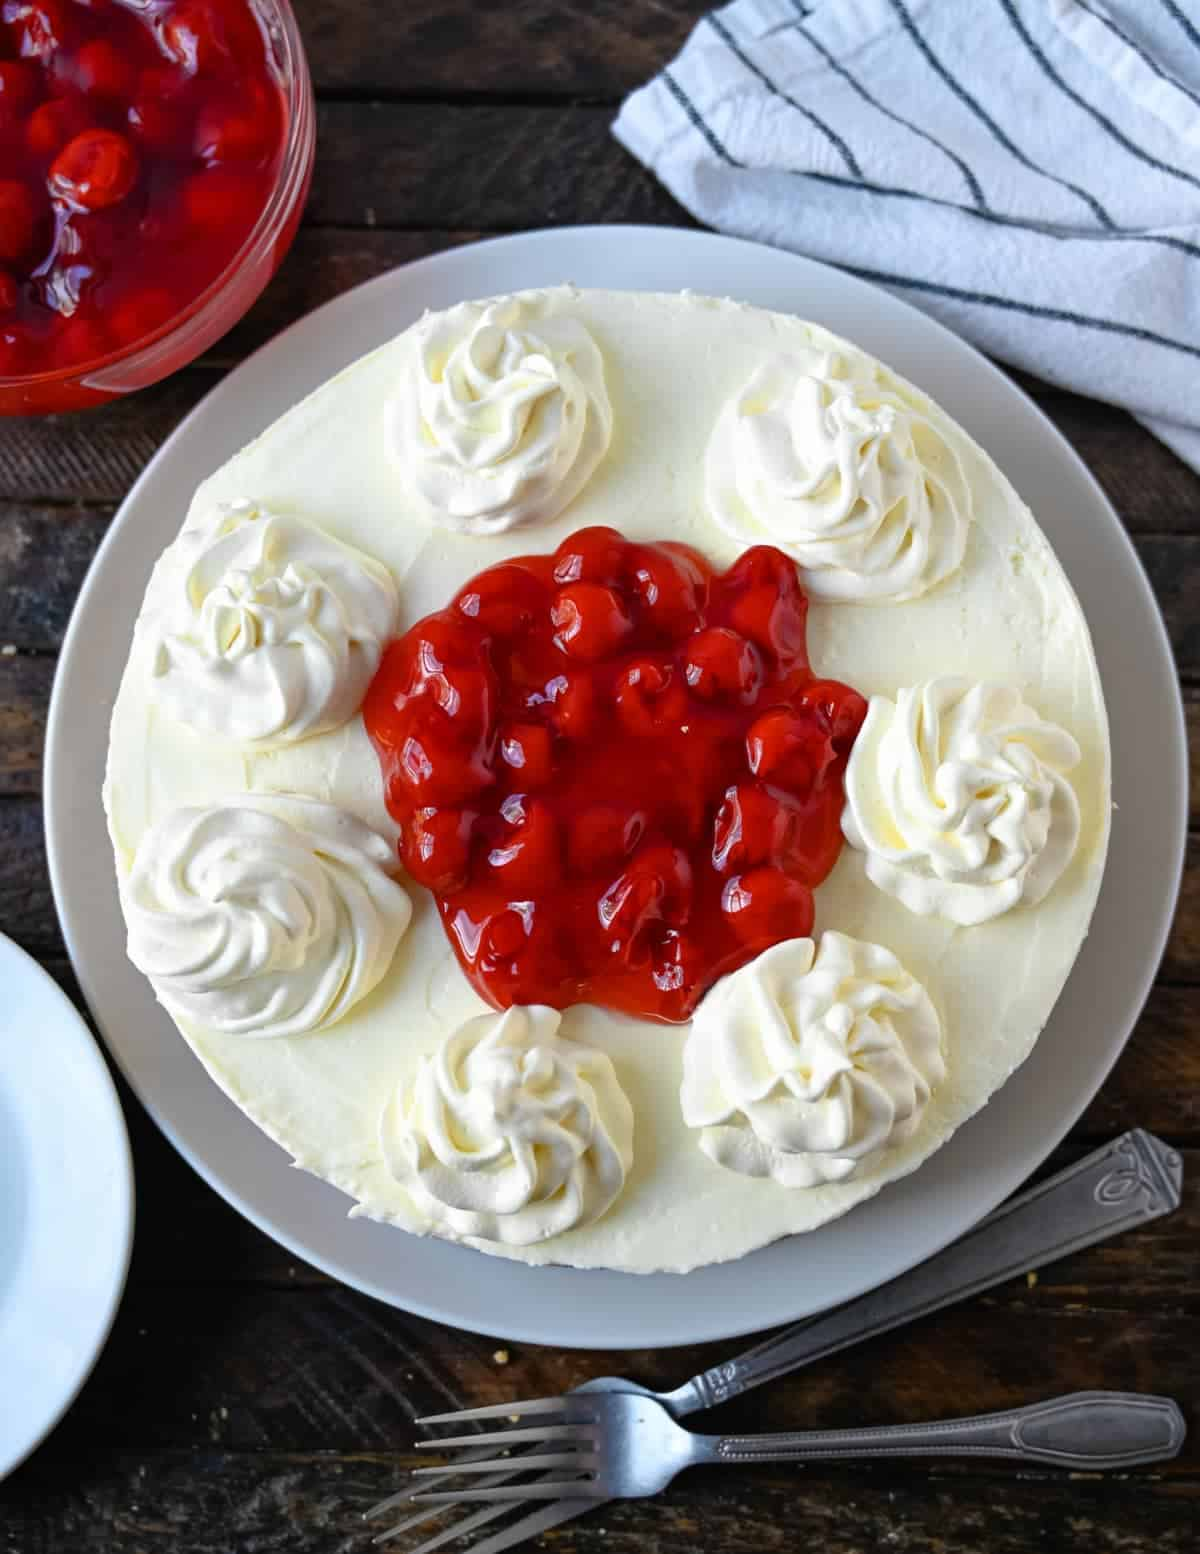 A whole no bake cheesecake with whipped cream and cherries on top.